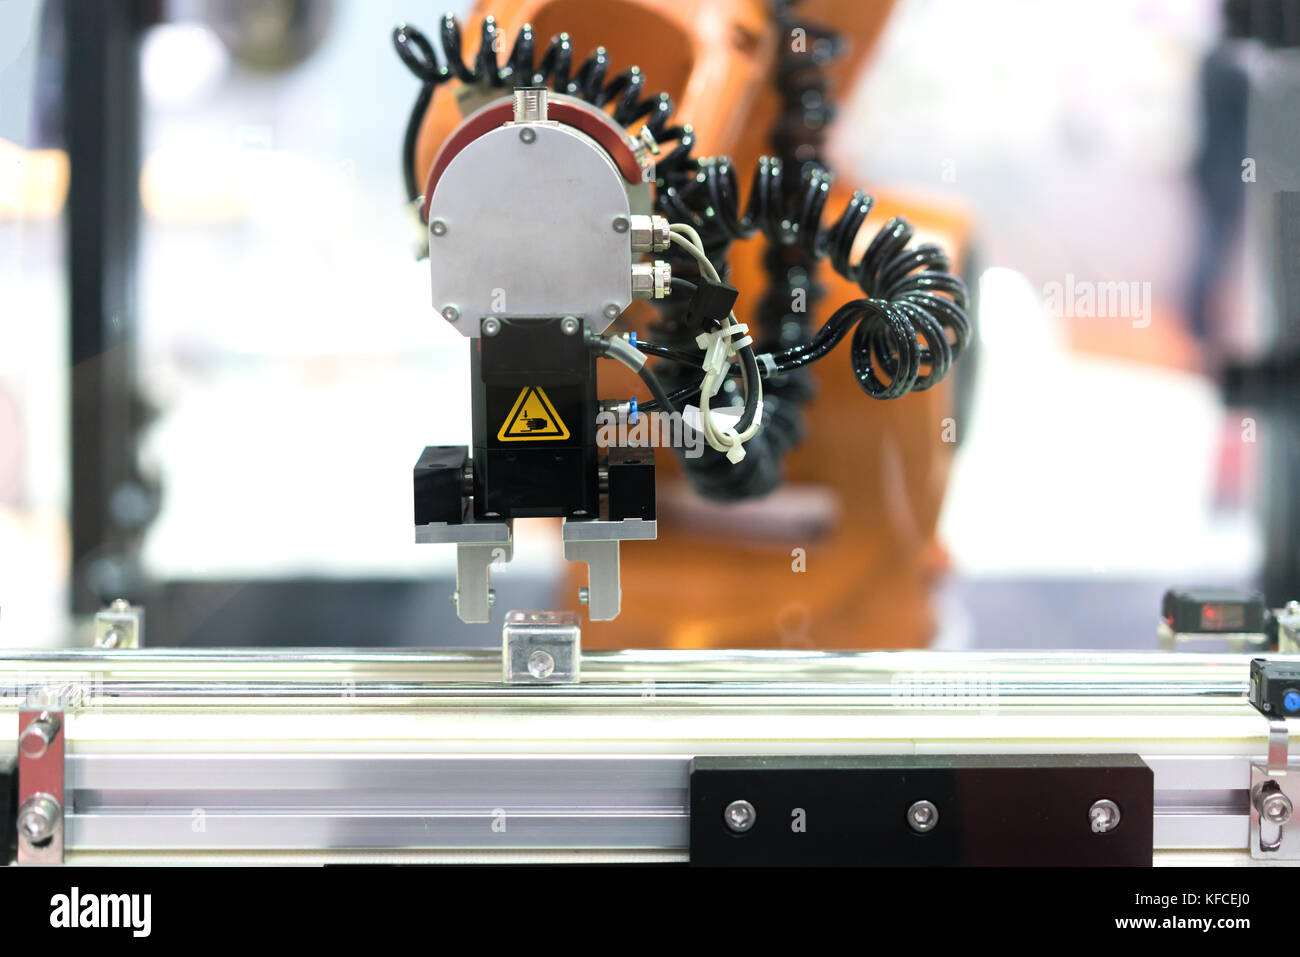 Automatic robot arm with imaging sensor in assembly line working in factory. Smart factory industry 4.0 concept. Stock Photo